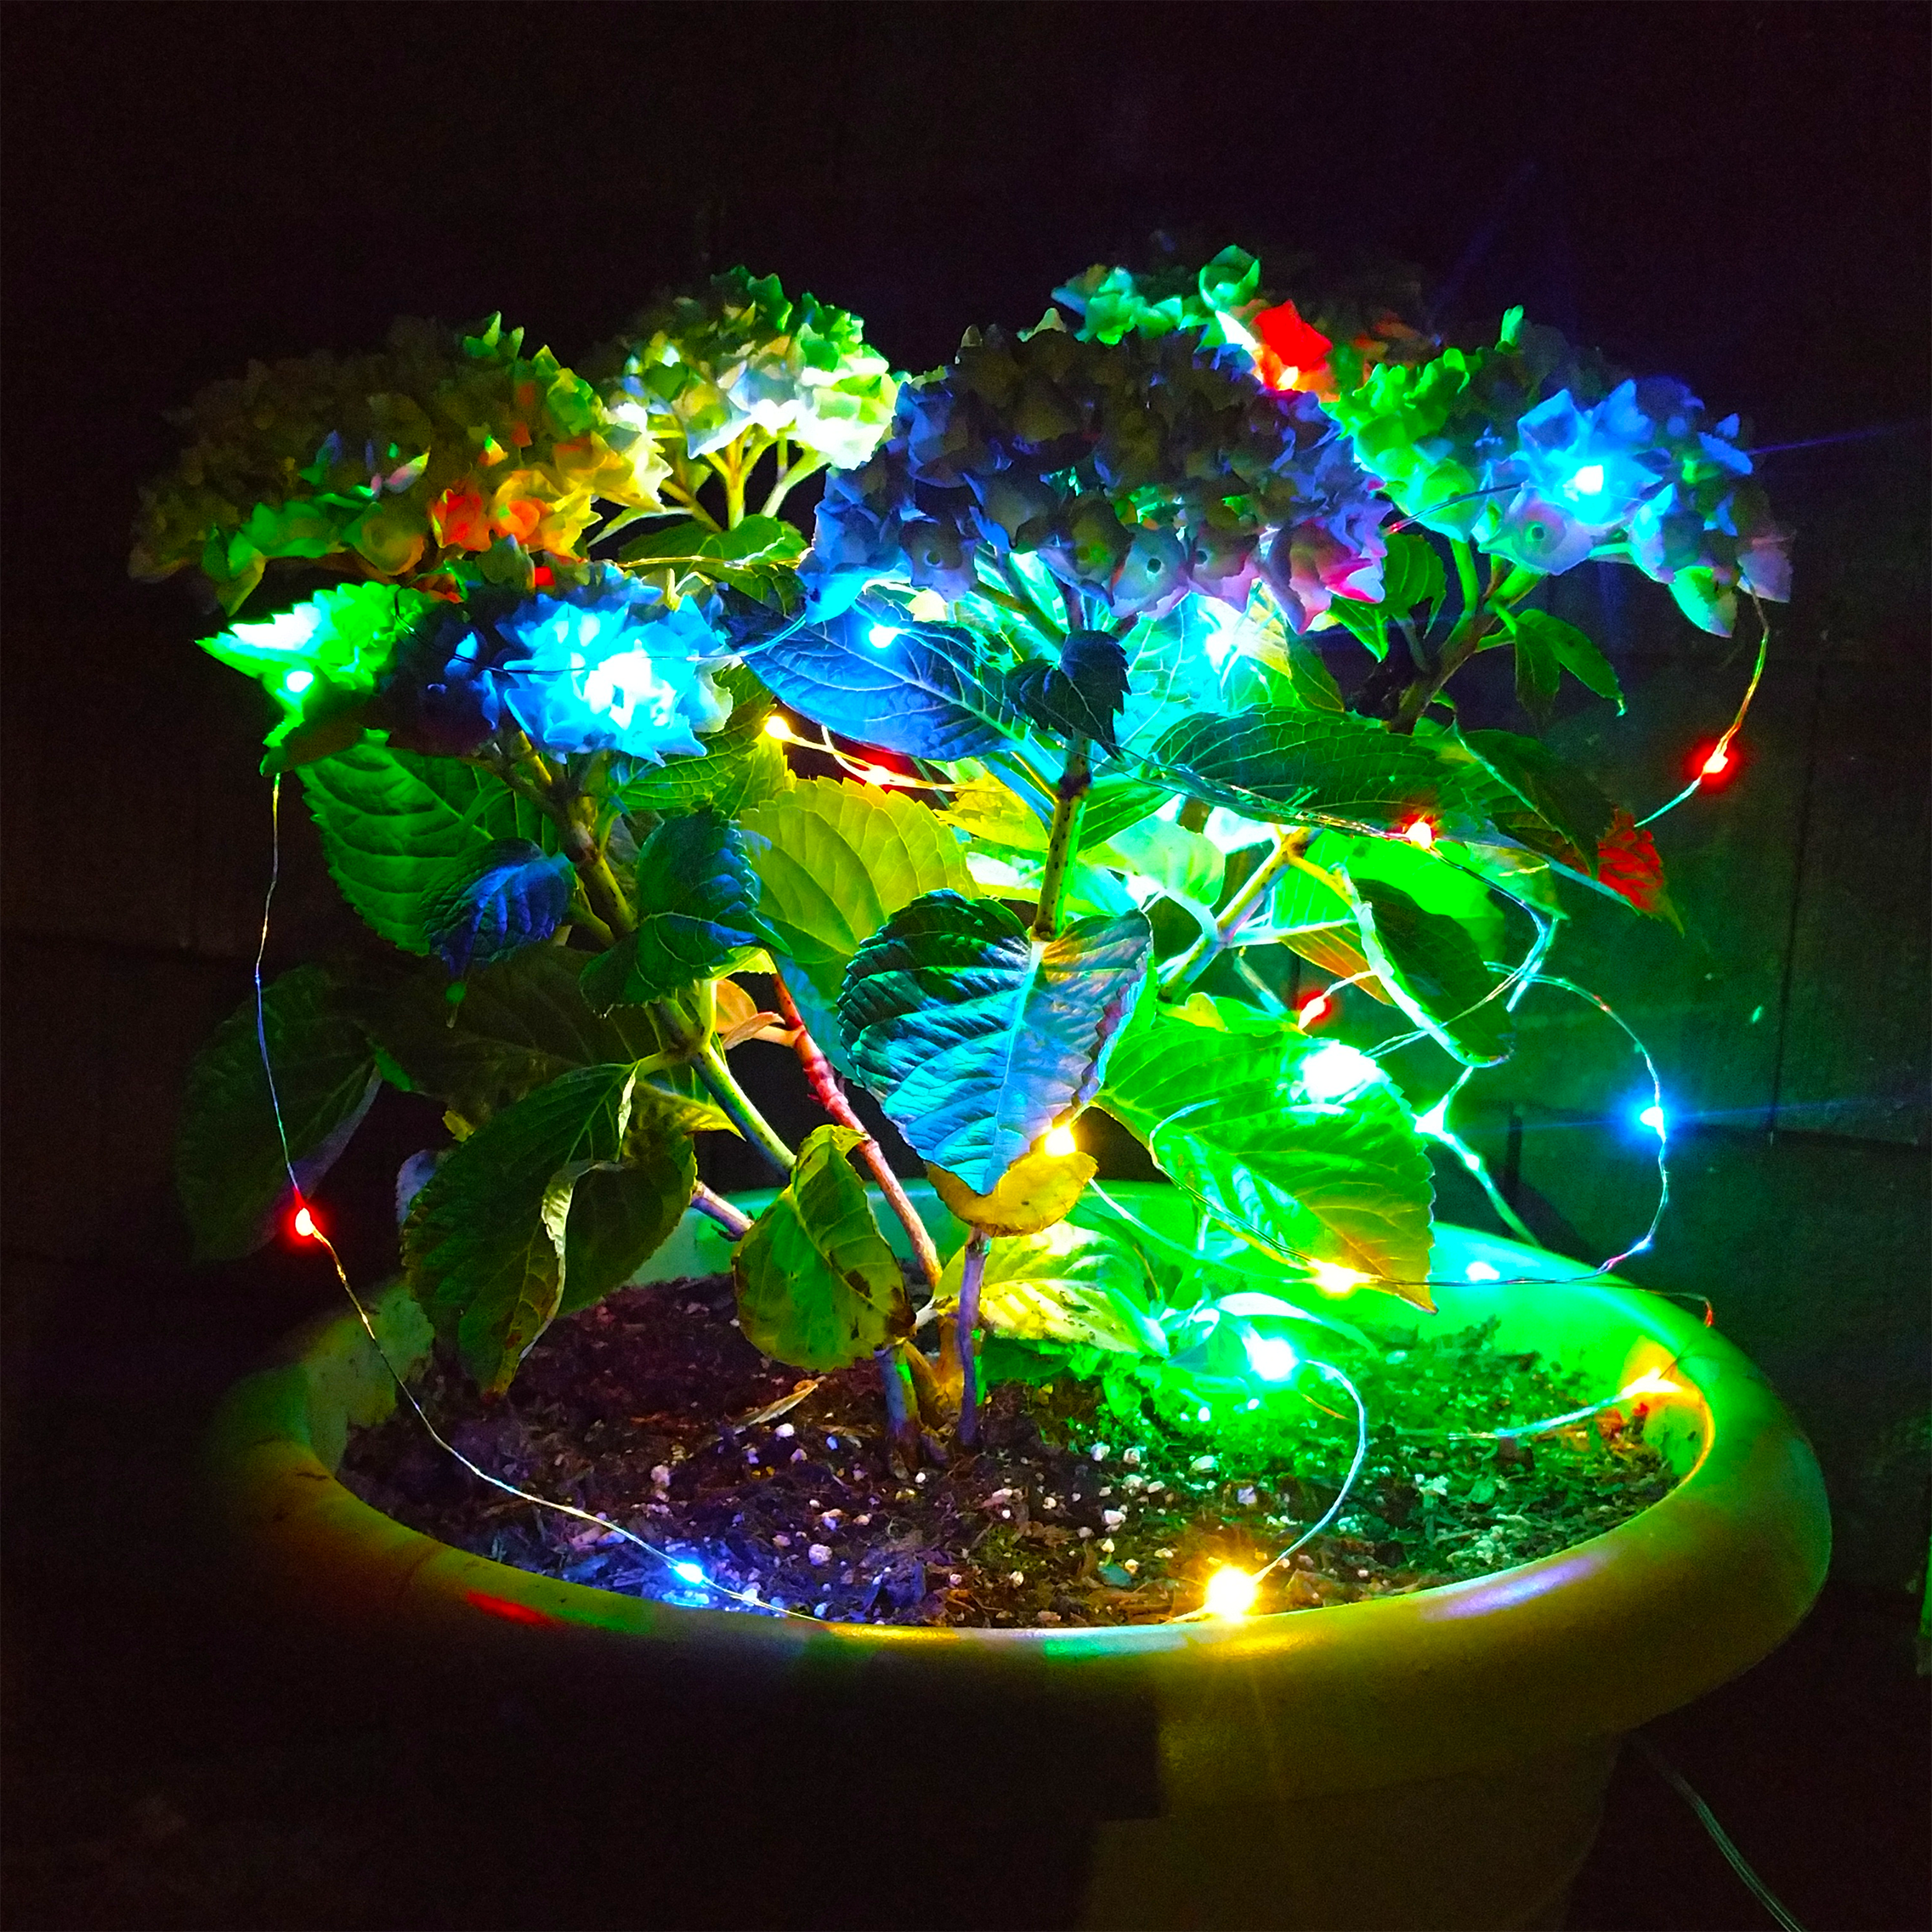 Solar Powered Led Fairy Lights 16 5 Foot Waterproof With 50 Multi Color Micro Led Lights On Silver Wire 8 Modes Hometown Evolution Inc Led Fairy Lights Fairy Lights Led Garden Lights